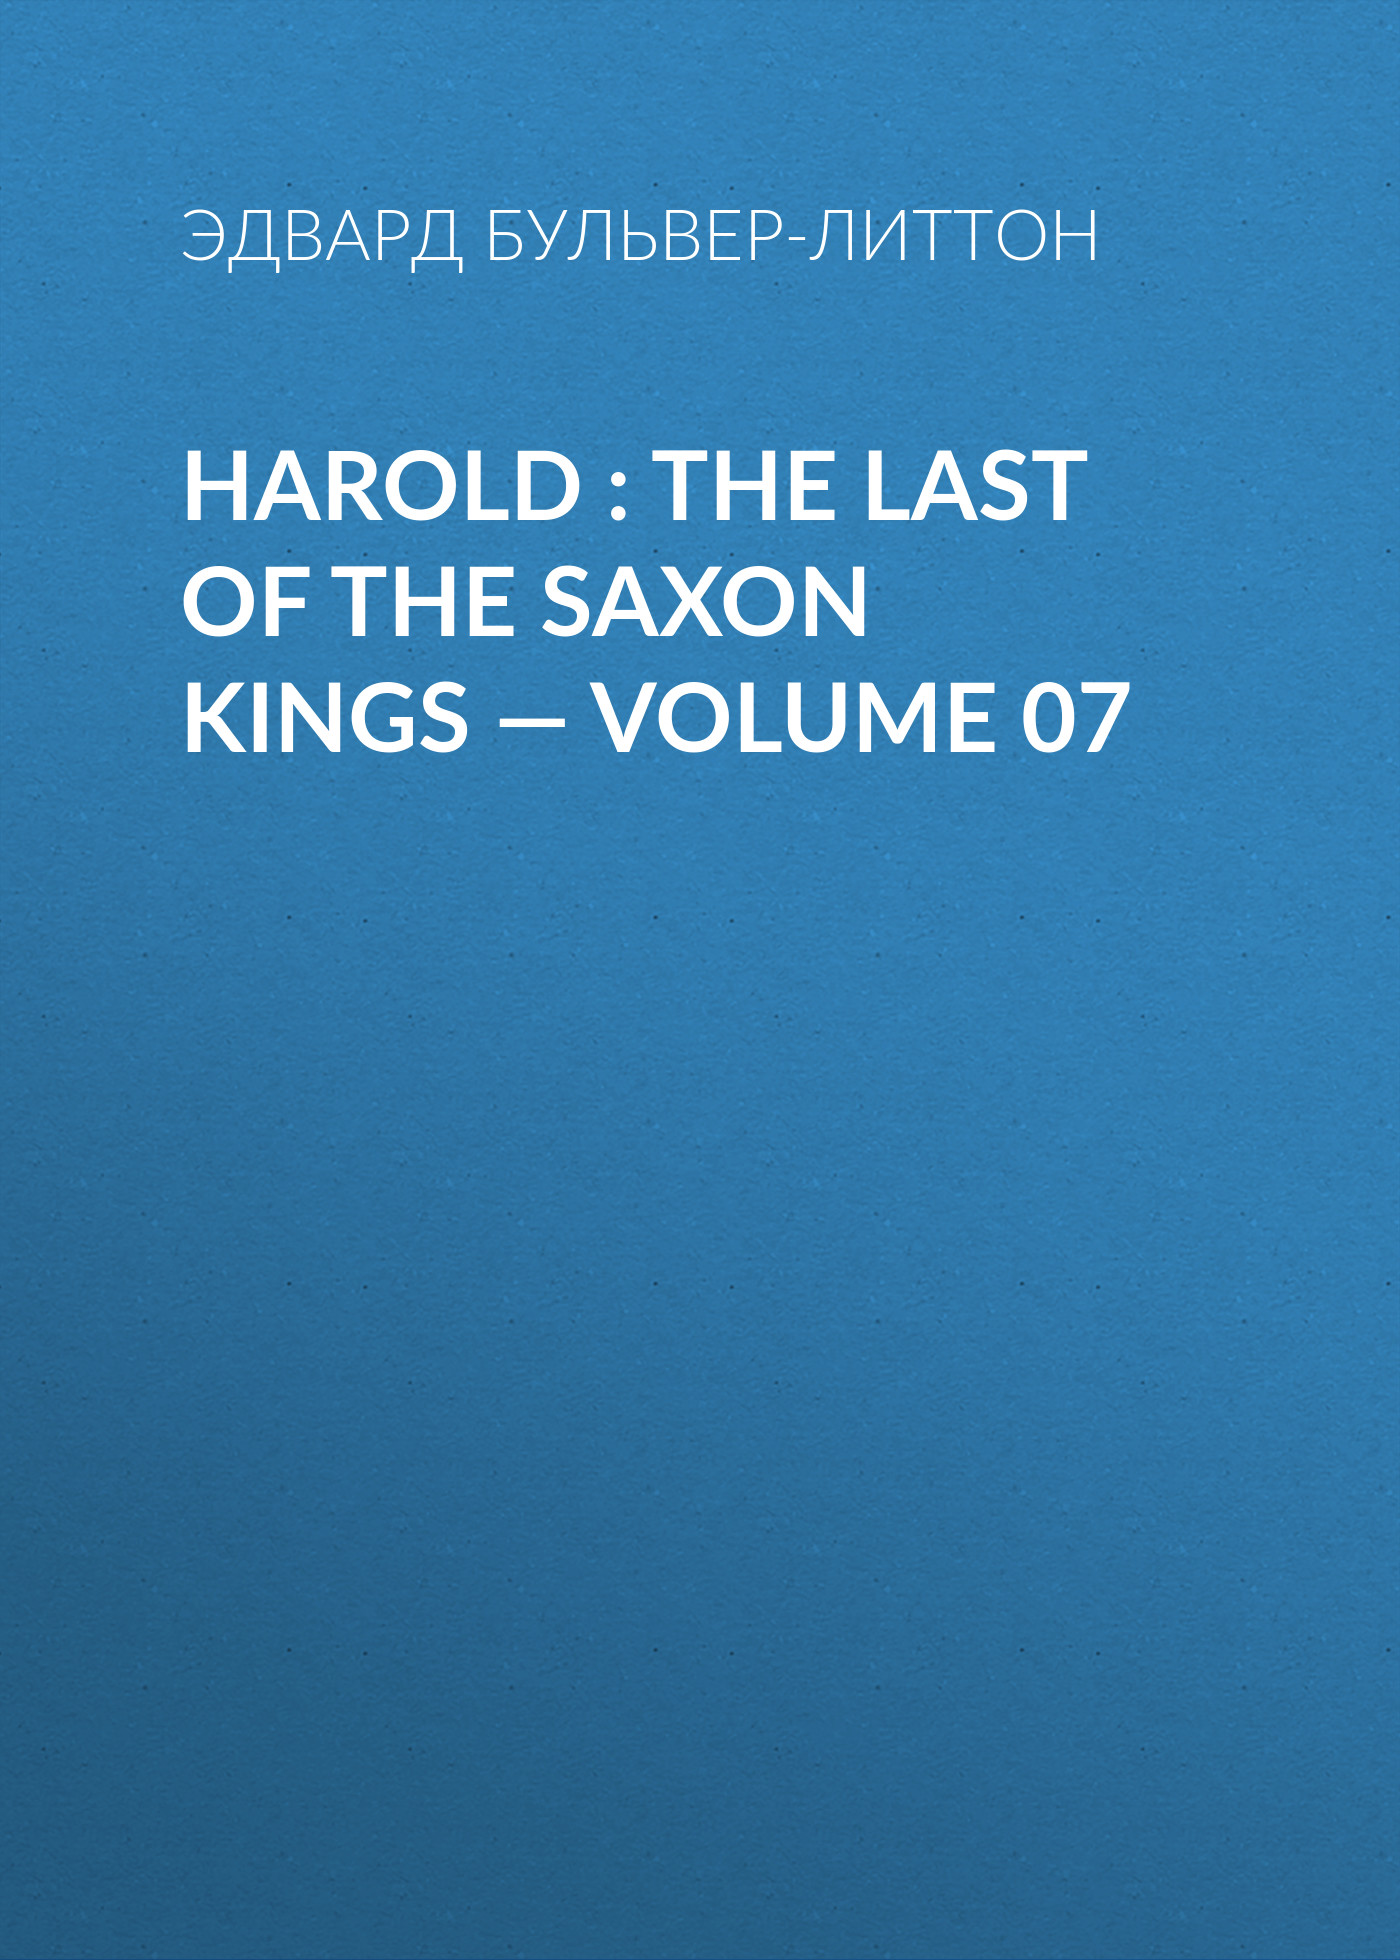 Эдвард Бульвер-Литтон Harold : the Last of the Saxon Kings — Volume 07 эдвард бульвер литтон harold the last of the saxon kings volume 10